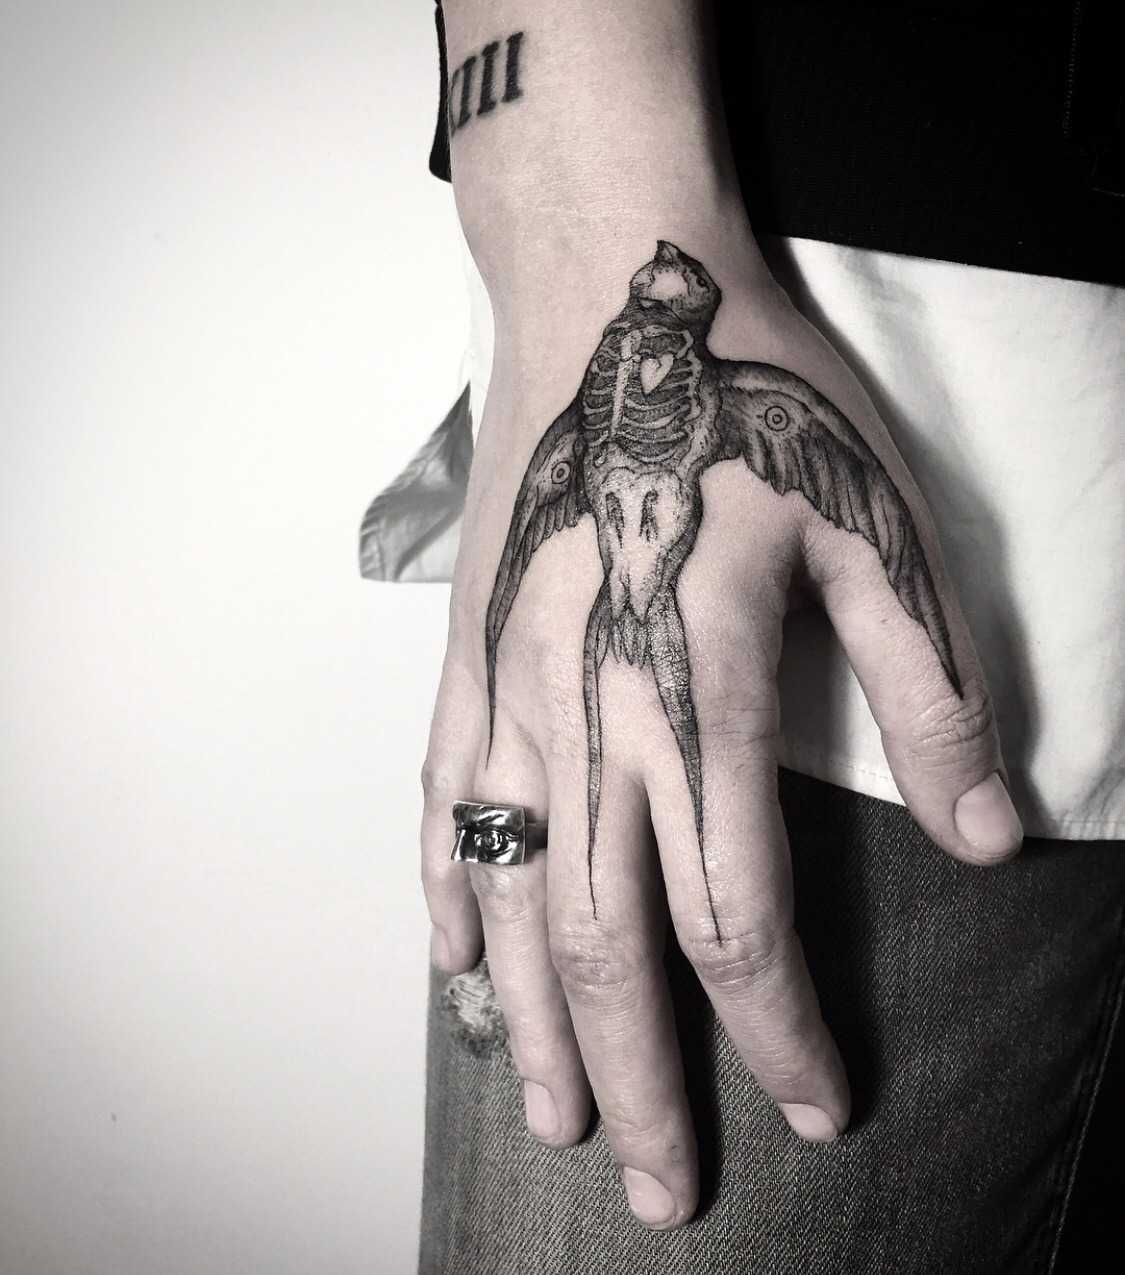 Dead bird tattoo on the hand